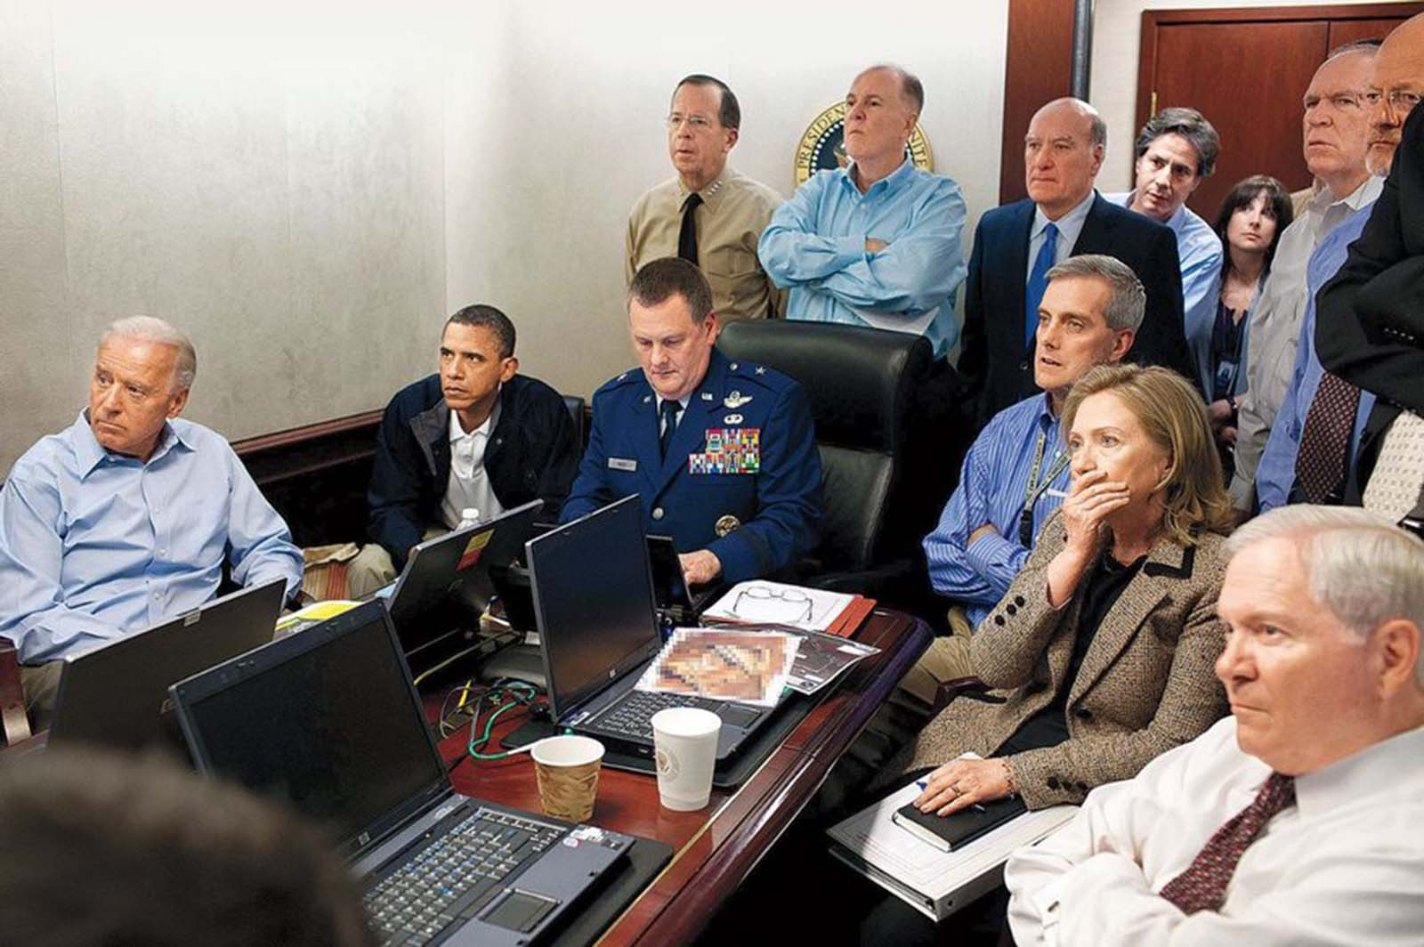 The Situation Room, Pete Souza, 2011